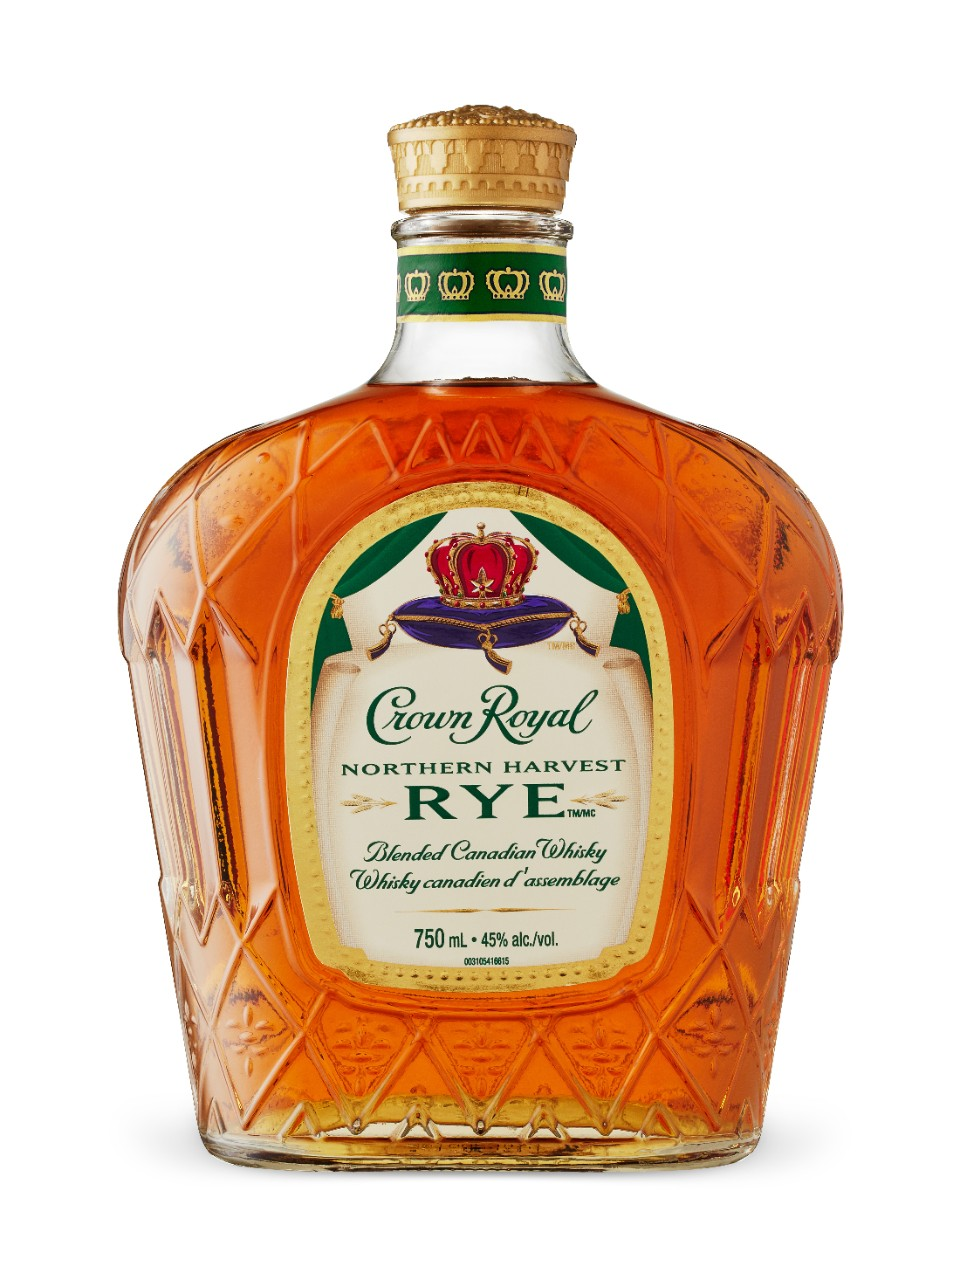 5. Canadian Whiskey – Crown Royal Northern Harvest Rye